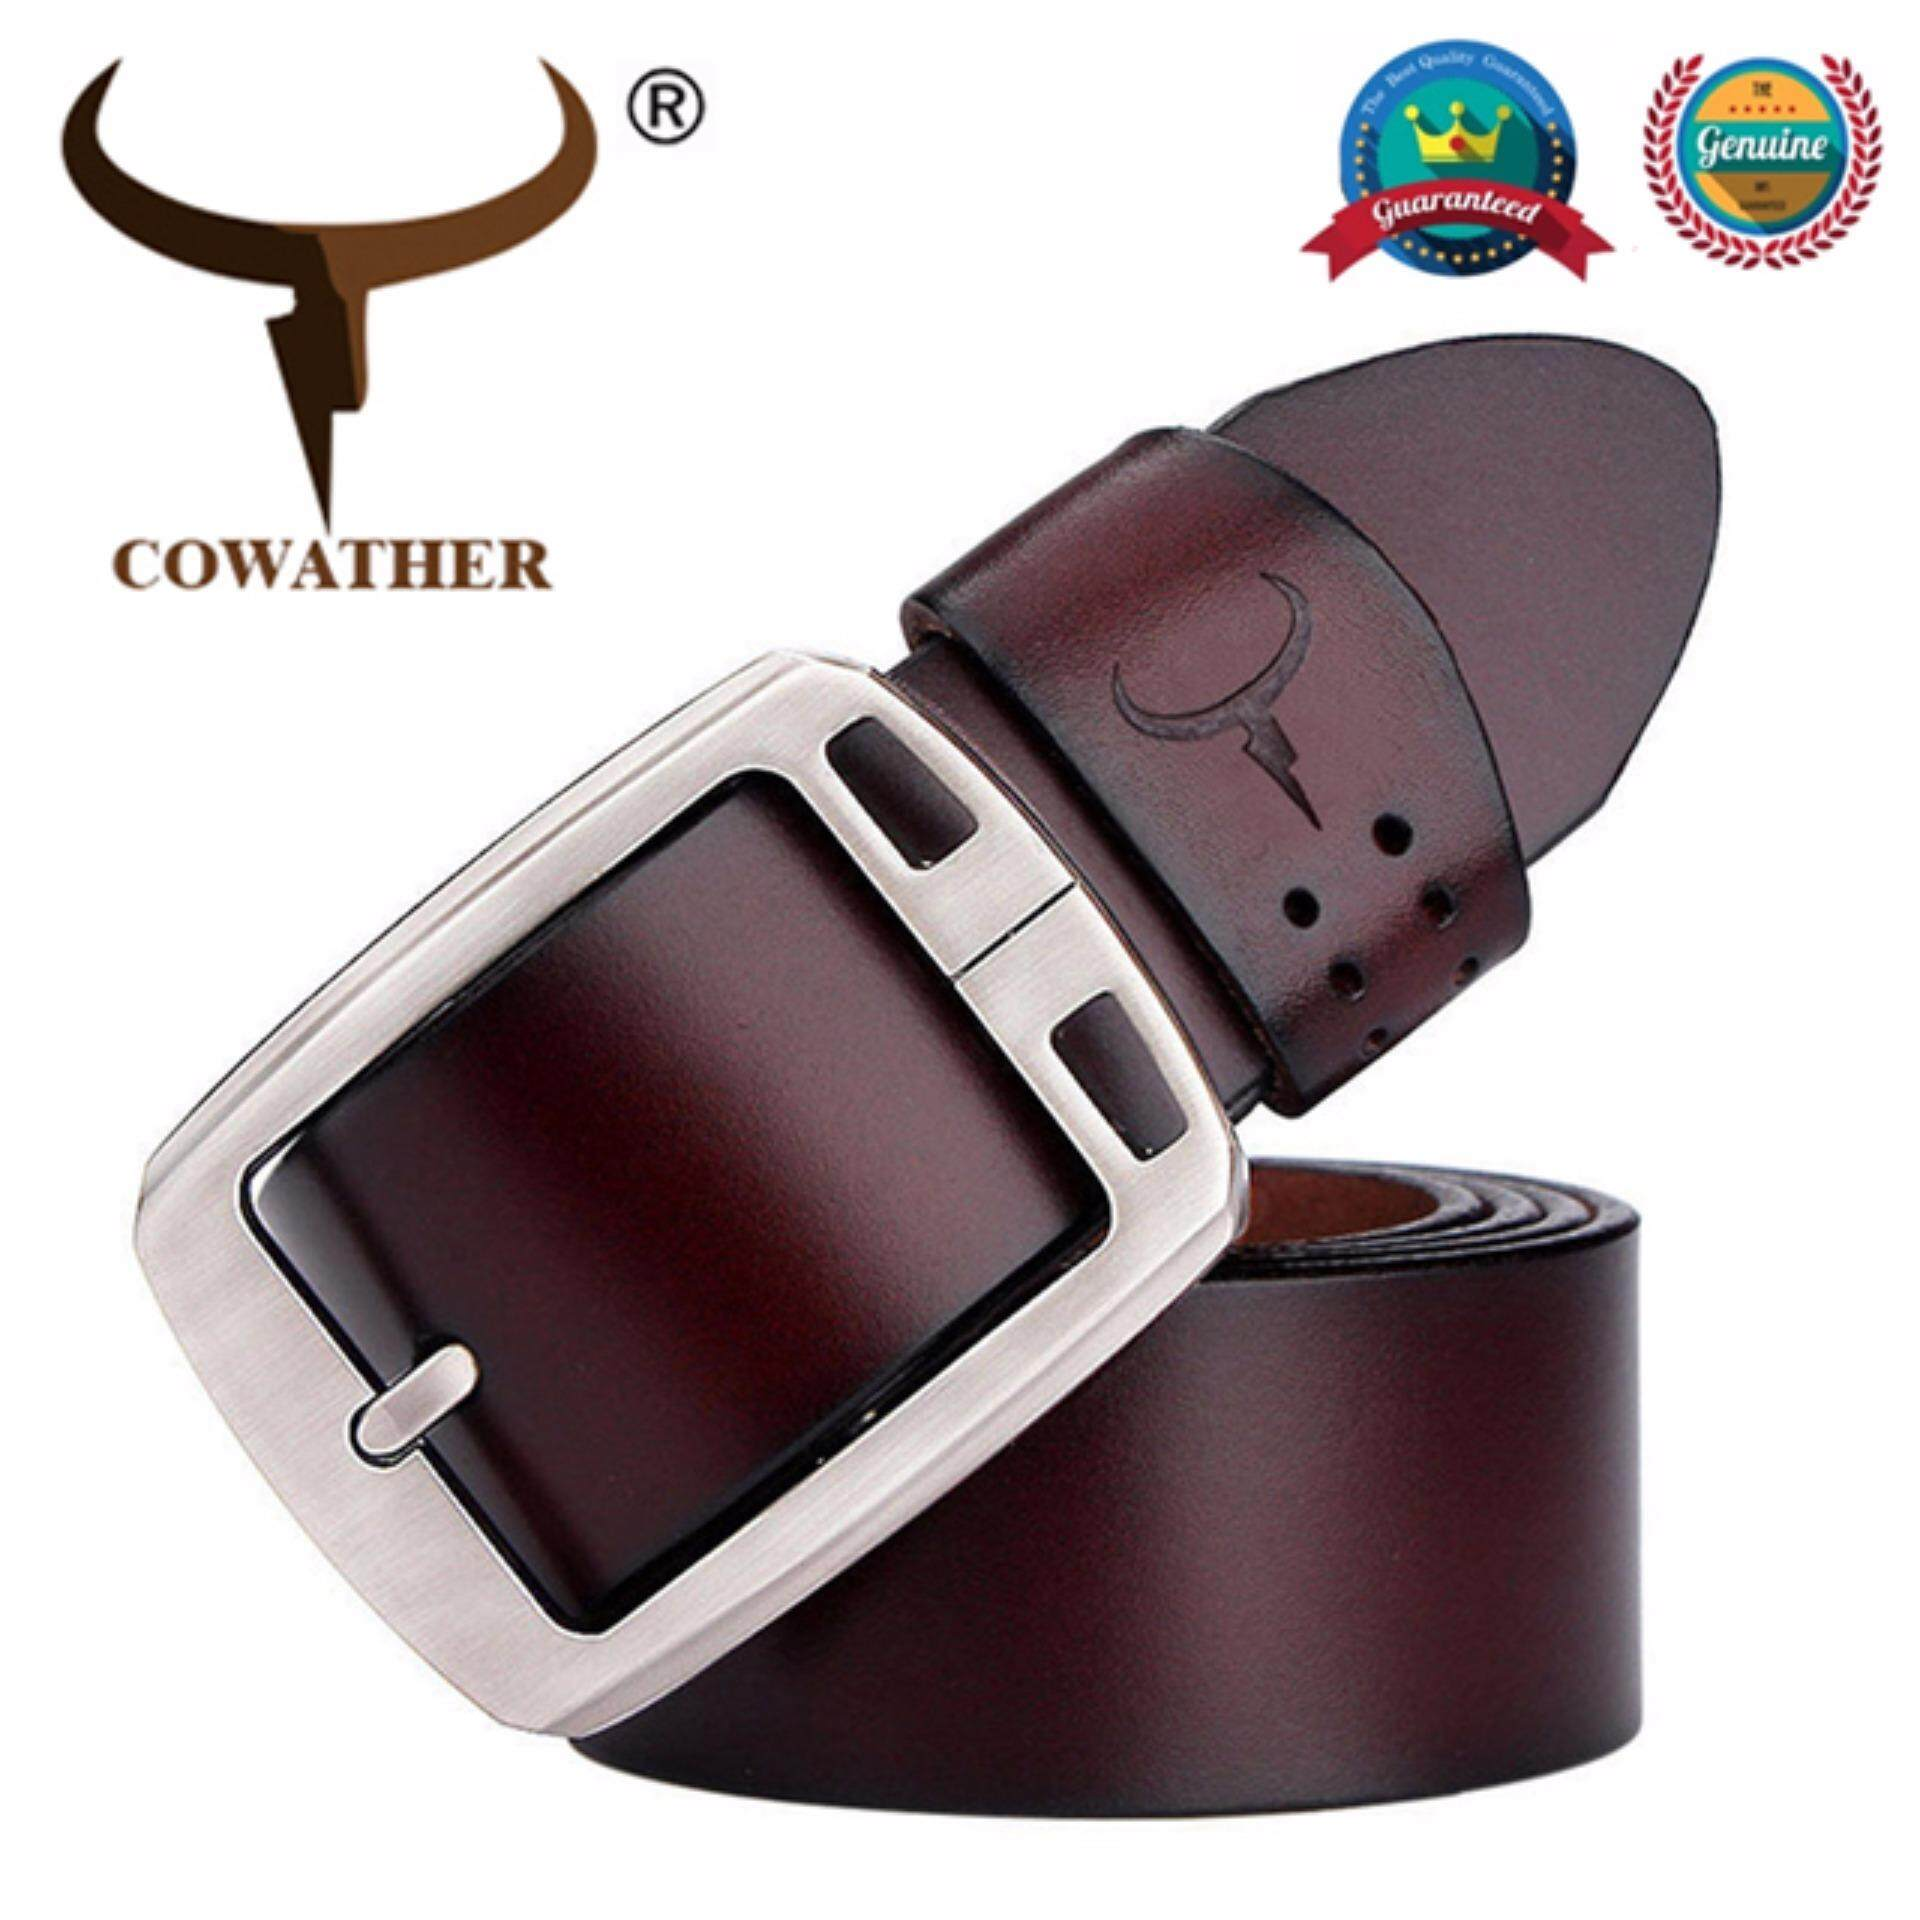 COWATHER เข็มขัดผู้ชาย หนังวัวแท้ 100% เข็มขัด ผู้ชาย เข็มขัด หนังแท้ Belt Men's Casual Waistband Belts,100% Cow Genuine Leather Belts With Single Pin Buckle